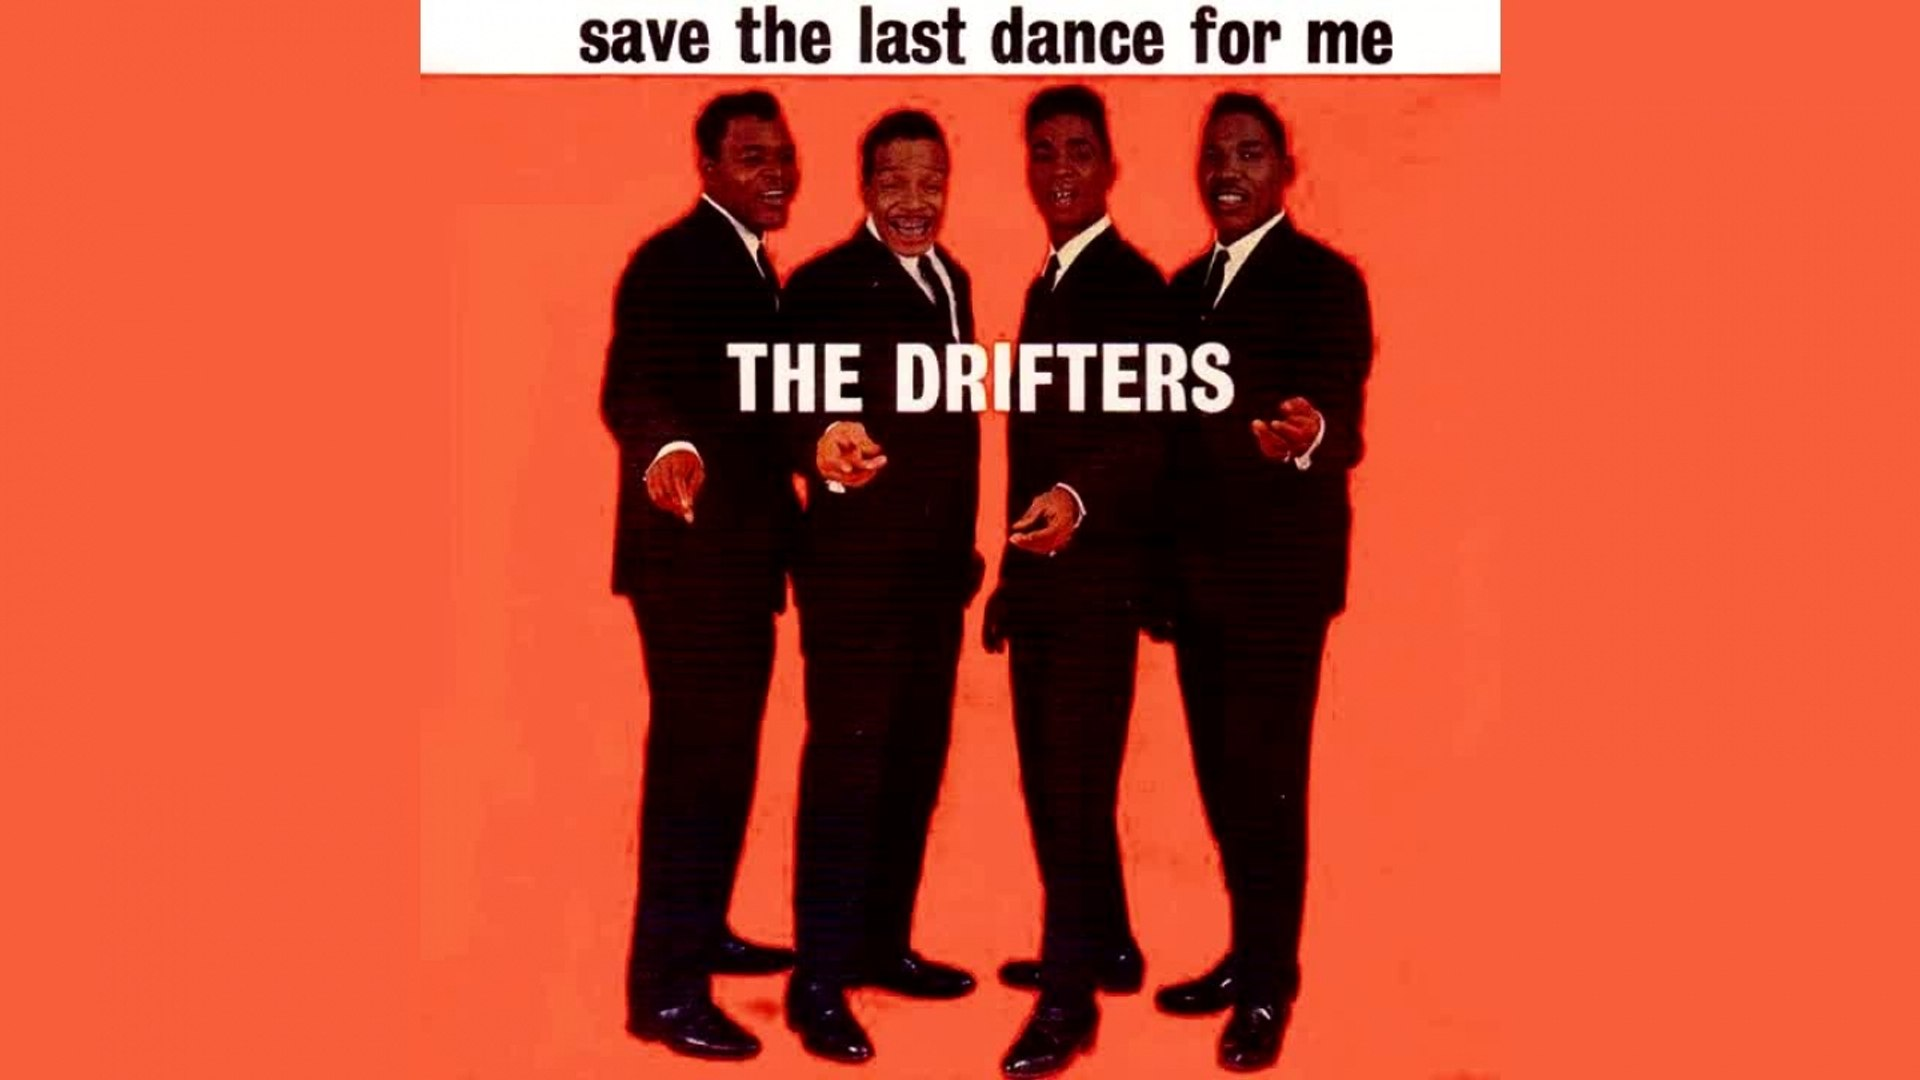 The Drifters - Save The Last Dance For Me - Vintage Music Songs